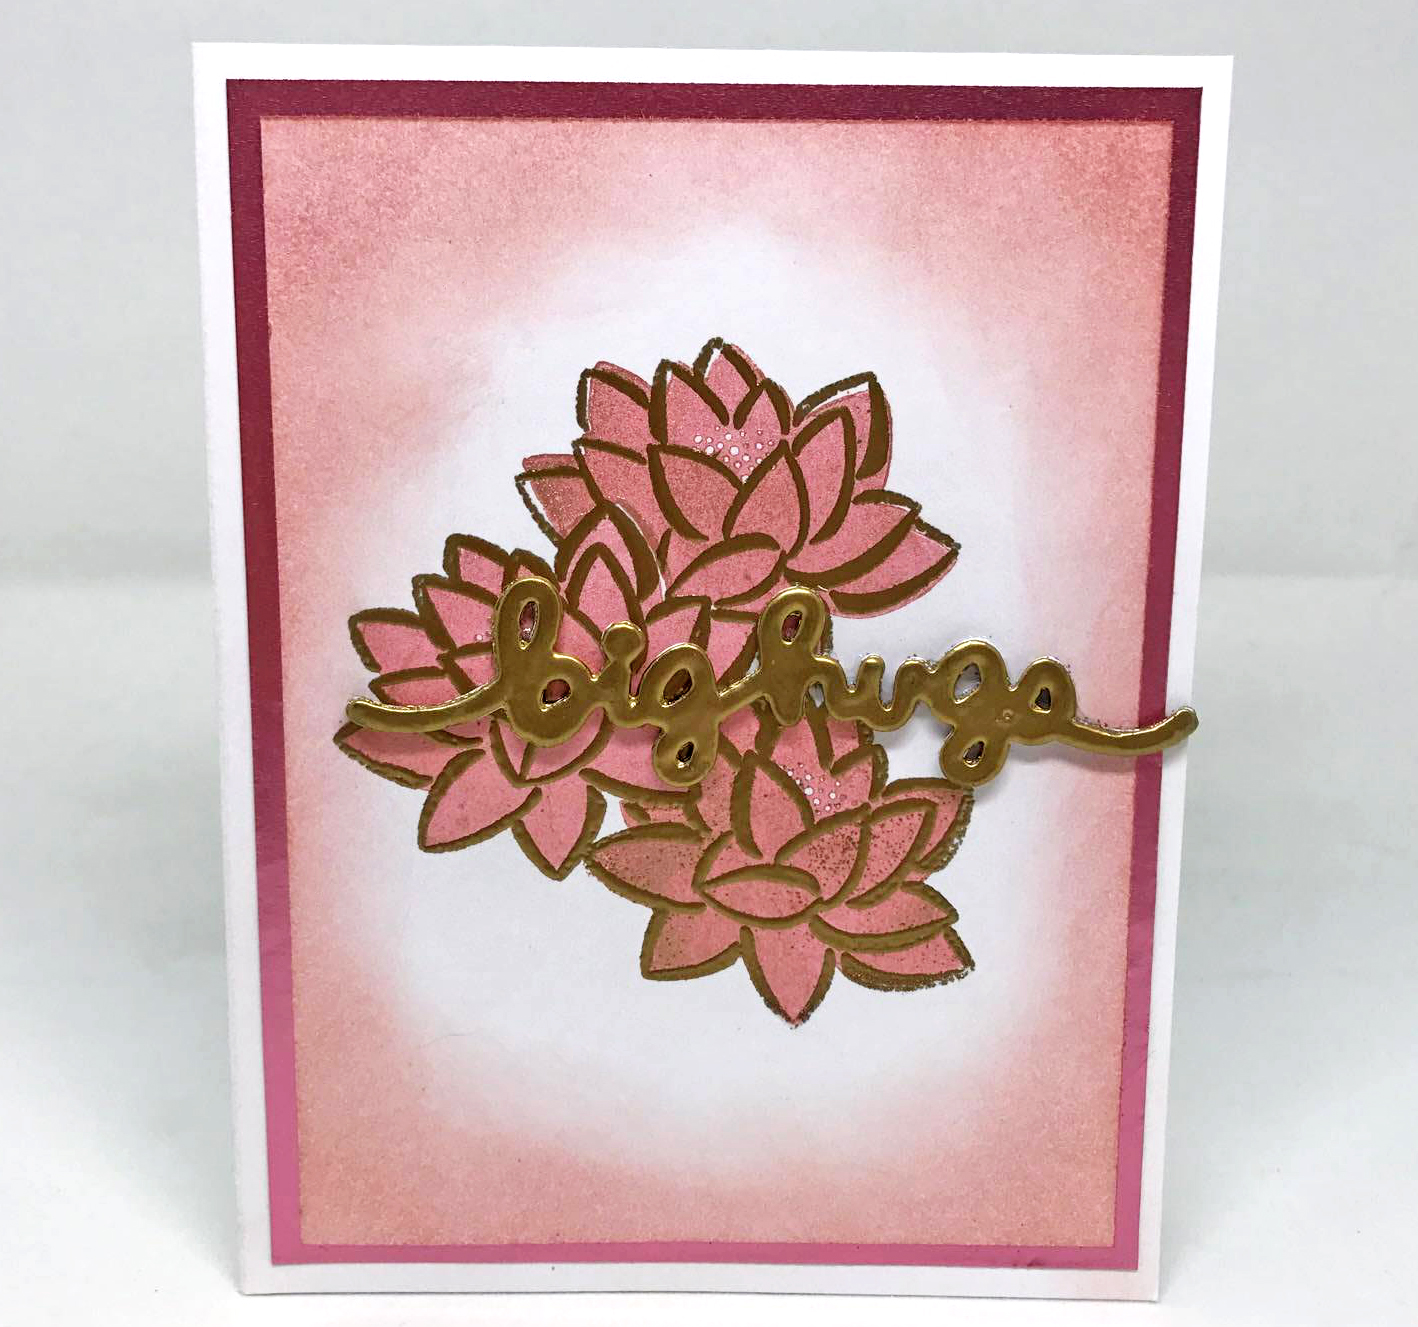 Handmade card usng Tsukineko's Delicata Rose Gold Ink and a die cut sentiment